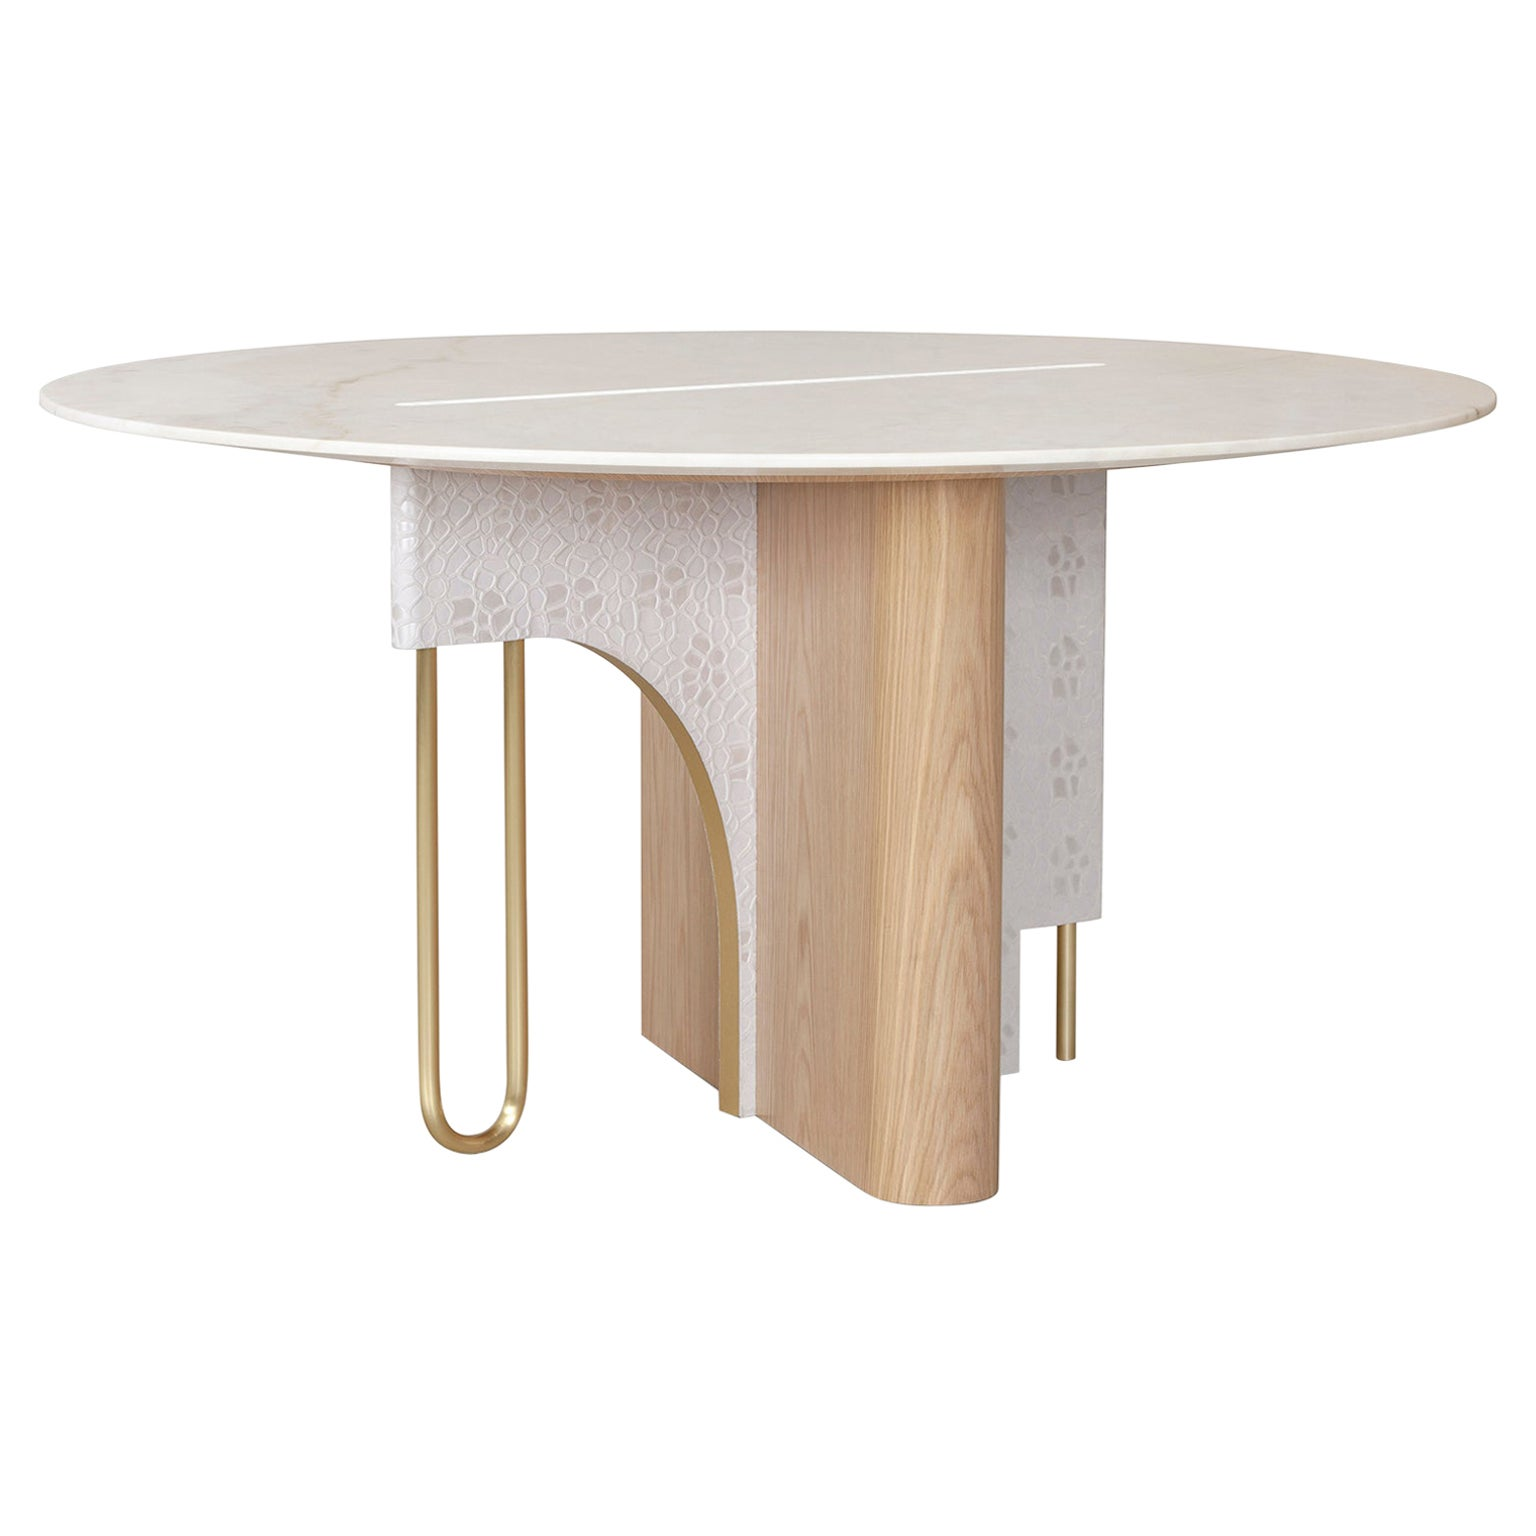 Ferreirinha 6-Seat Round Dining Table Calacatta Bianco Brushed Brass Oak Leather